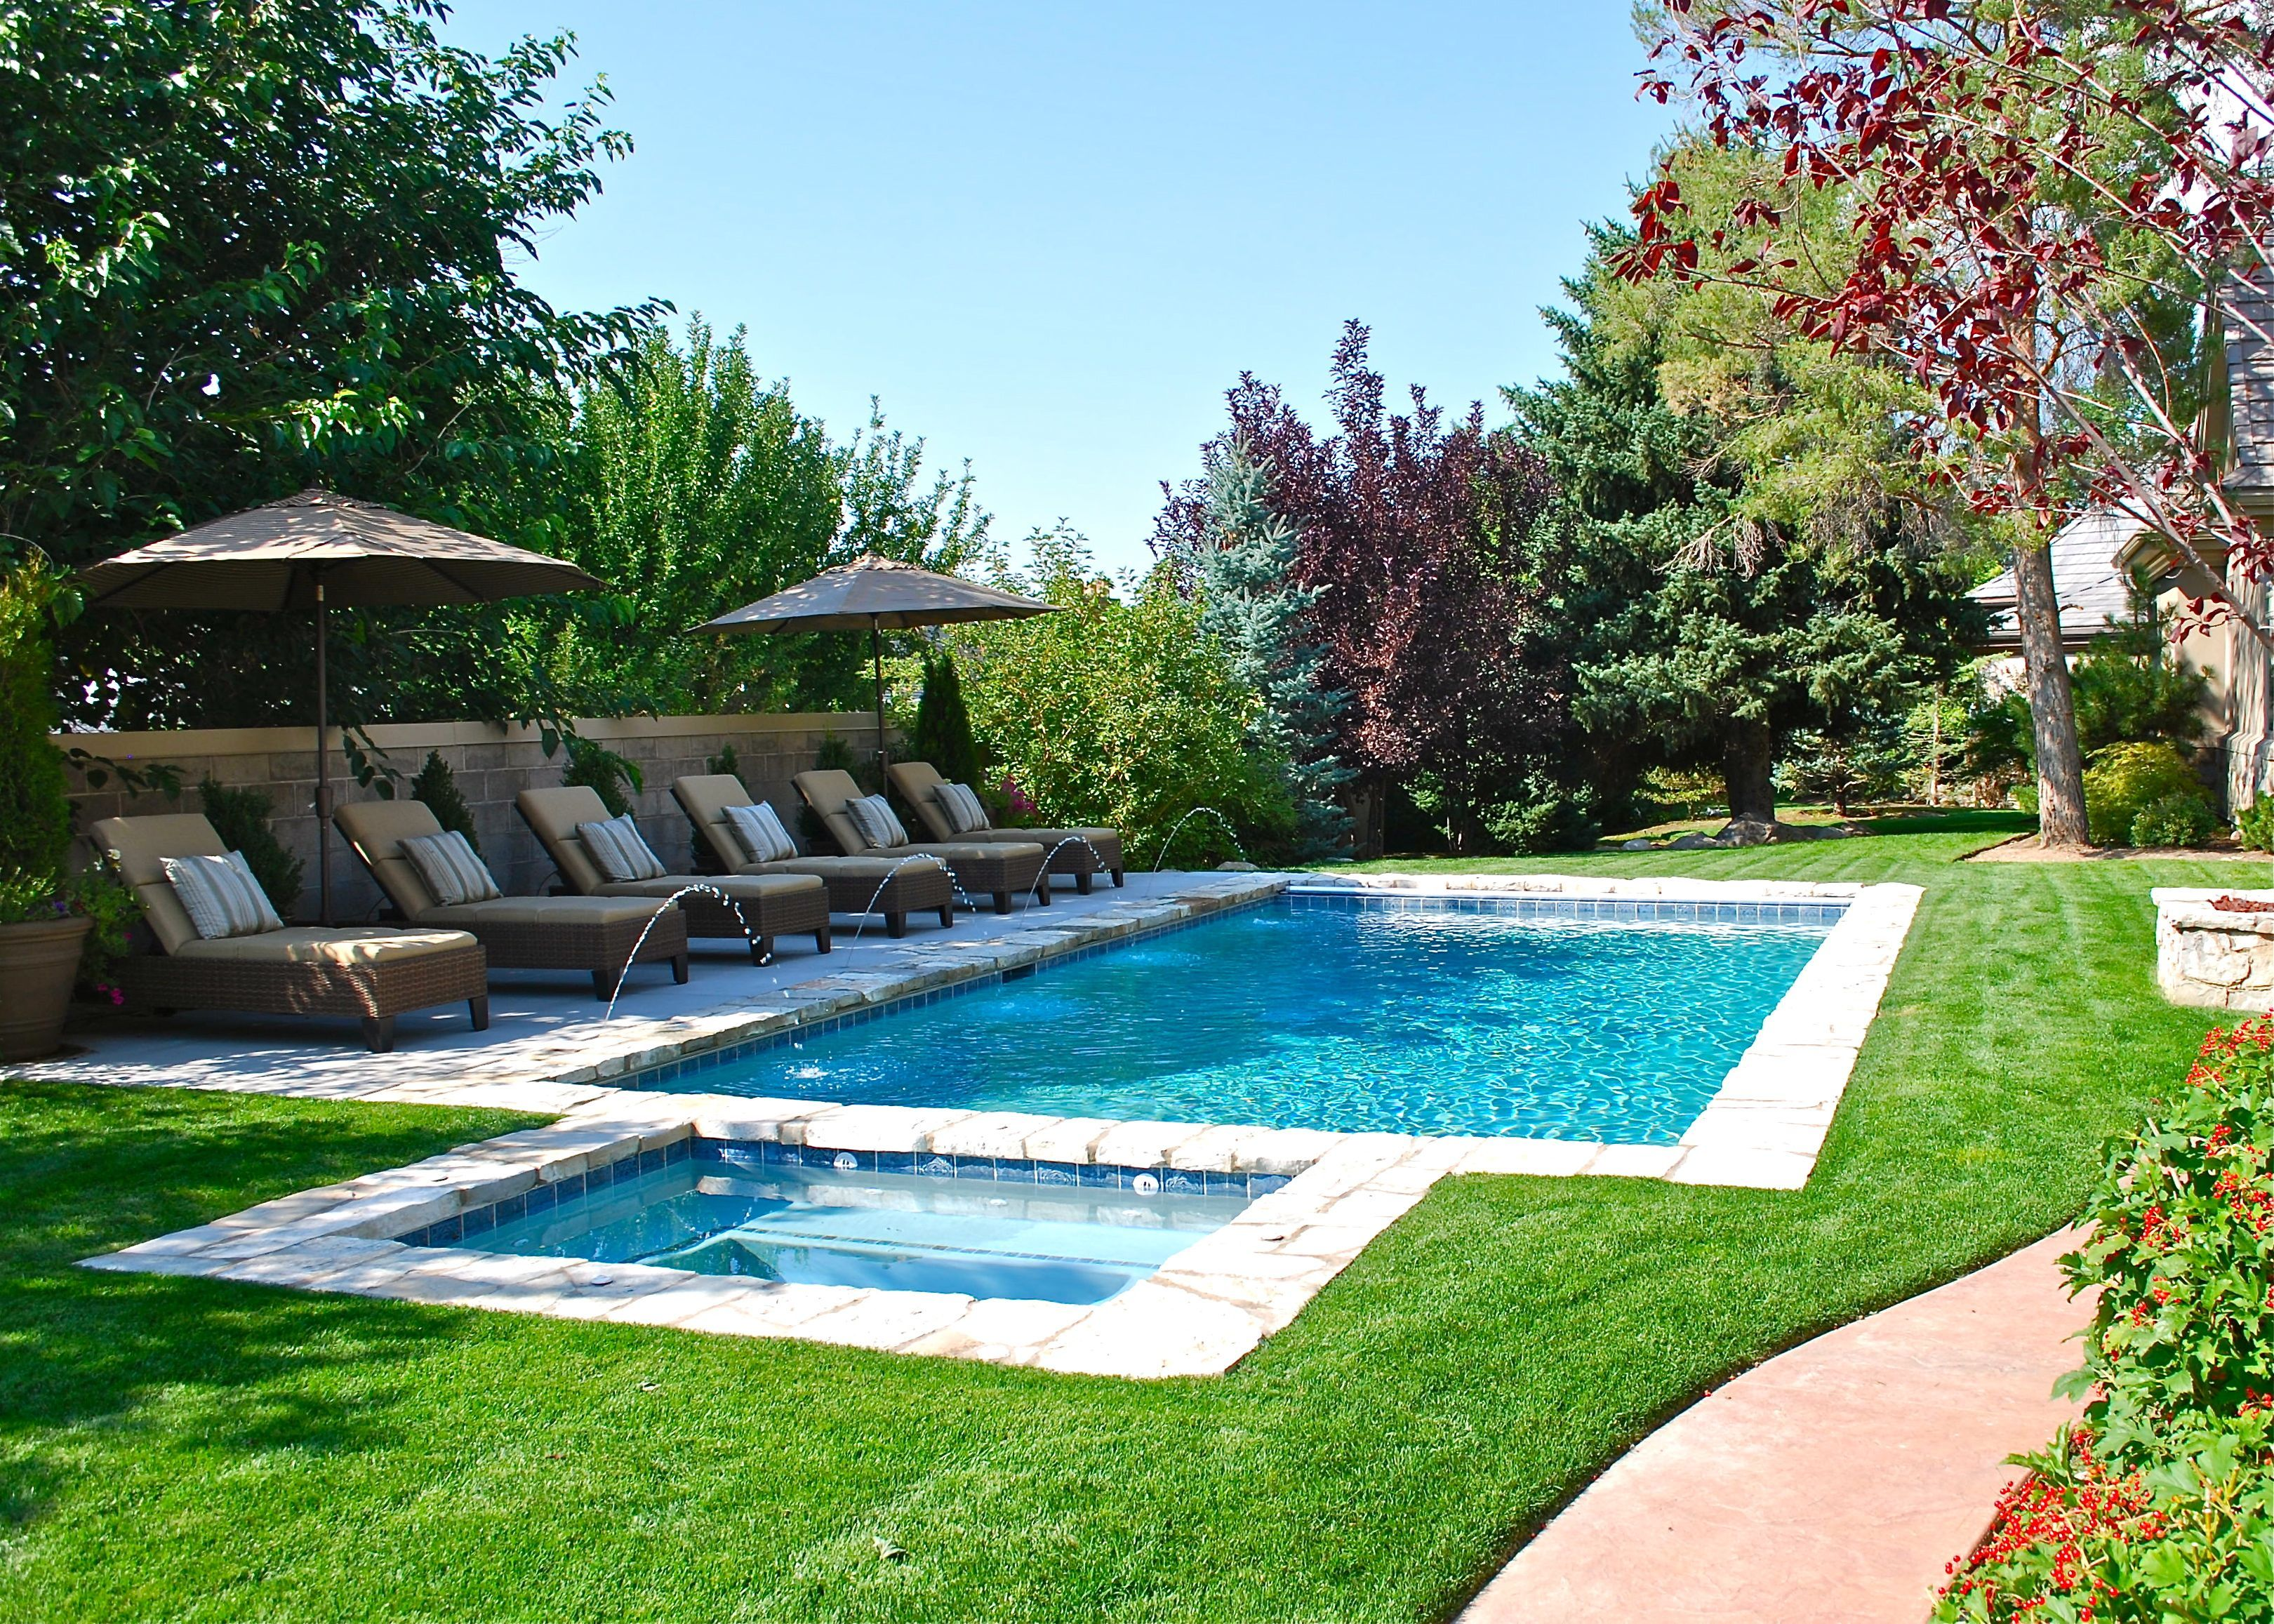 Swimming Pool And Landscape Designs Backyard Swimming Pool With Minimal Decking Deckjets And